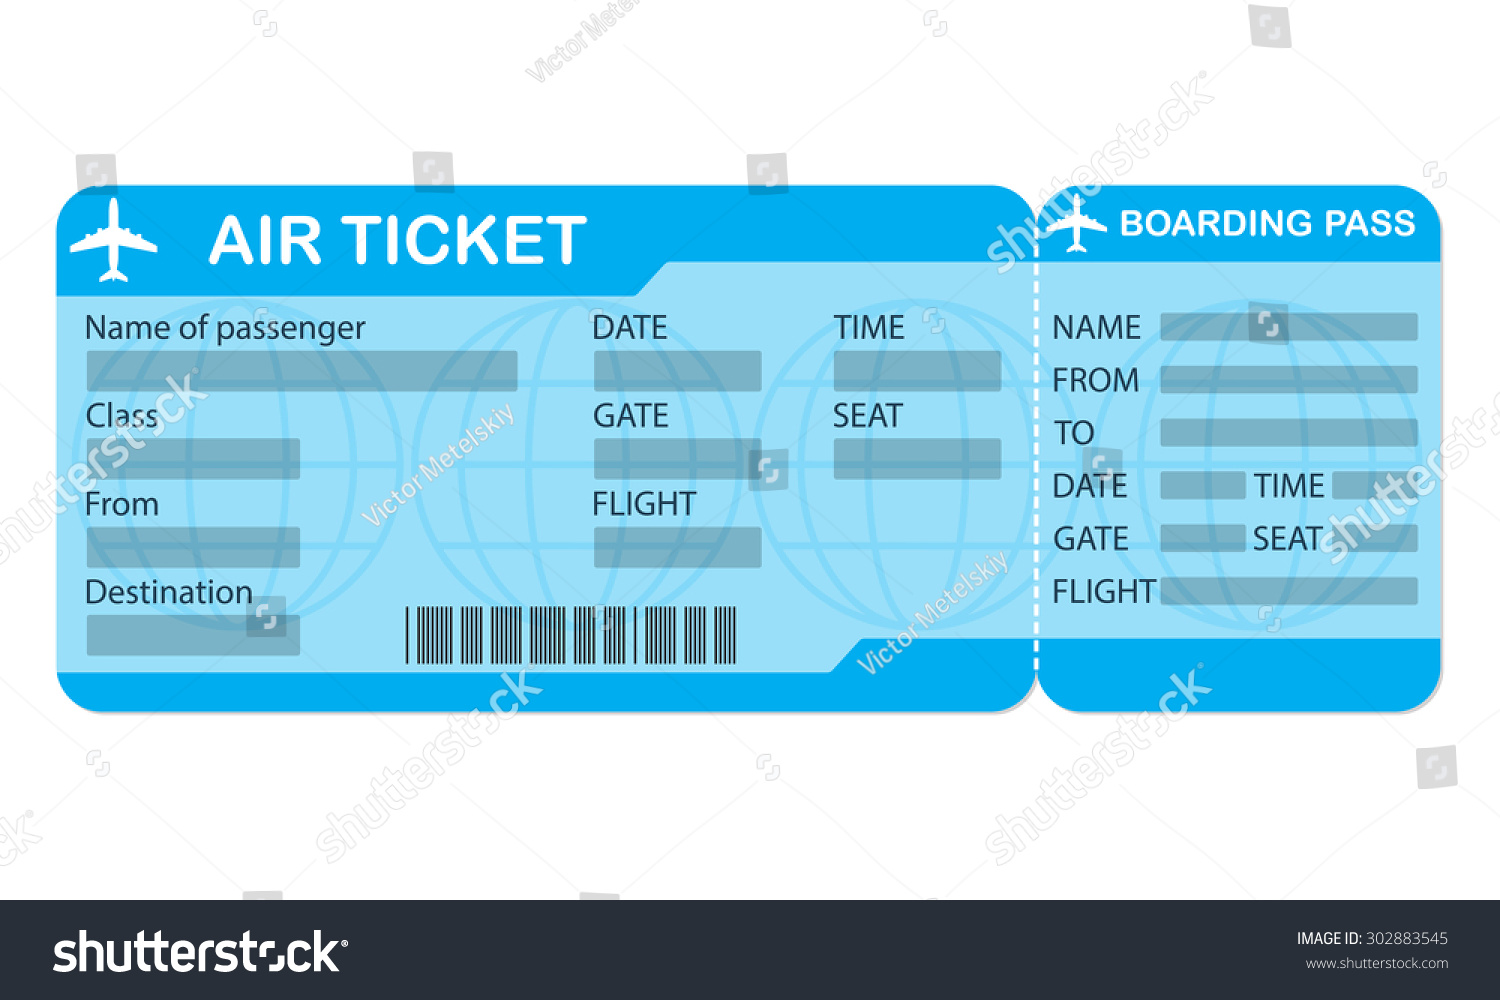 Doc1300740 Plane Ticket Template Blank Airline Boarding Pass – Plane Ticket Template